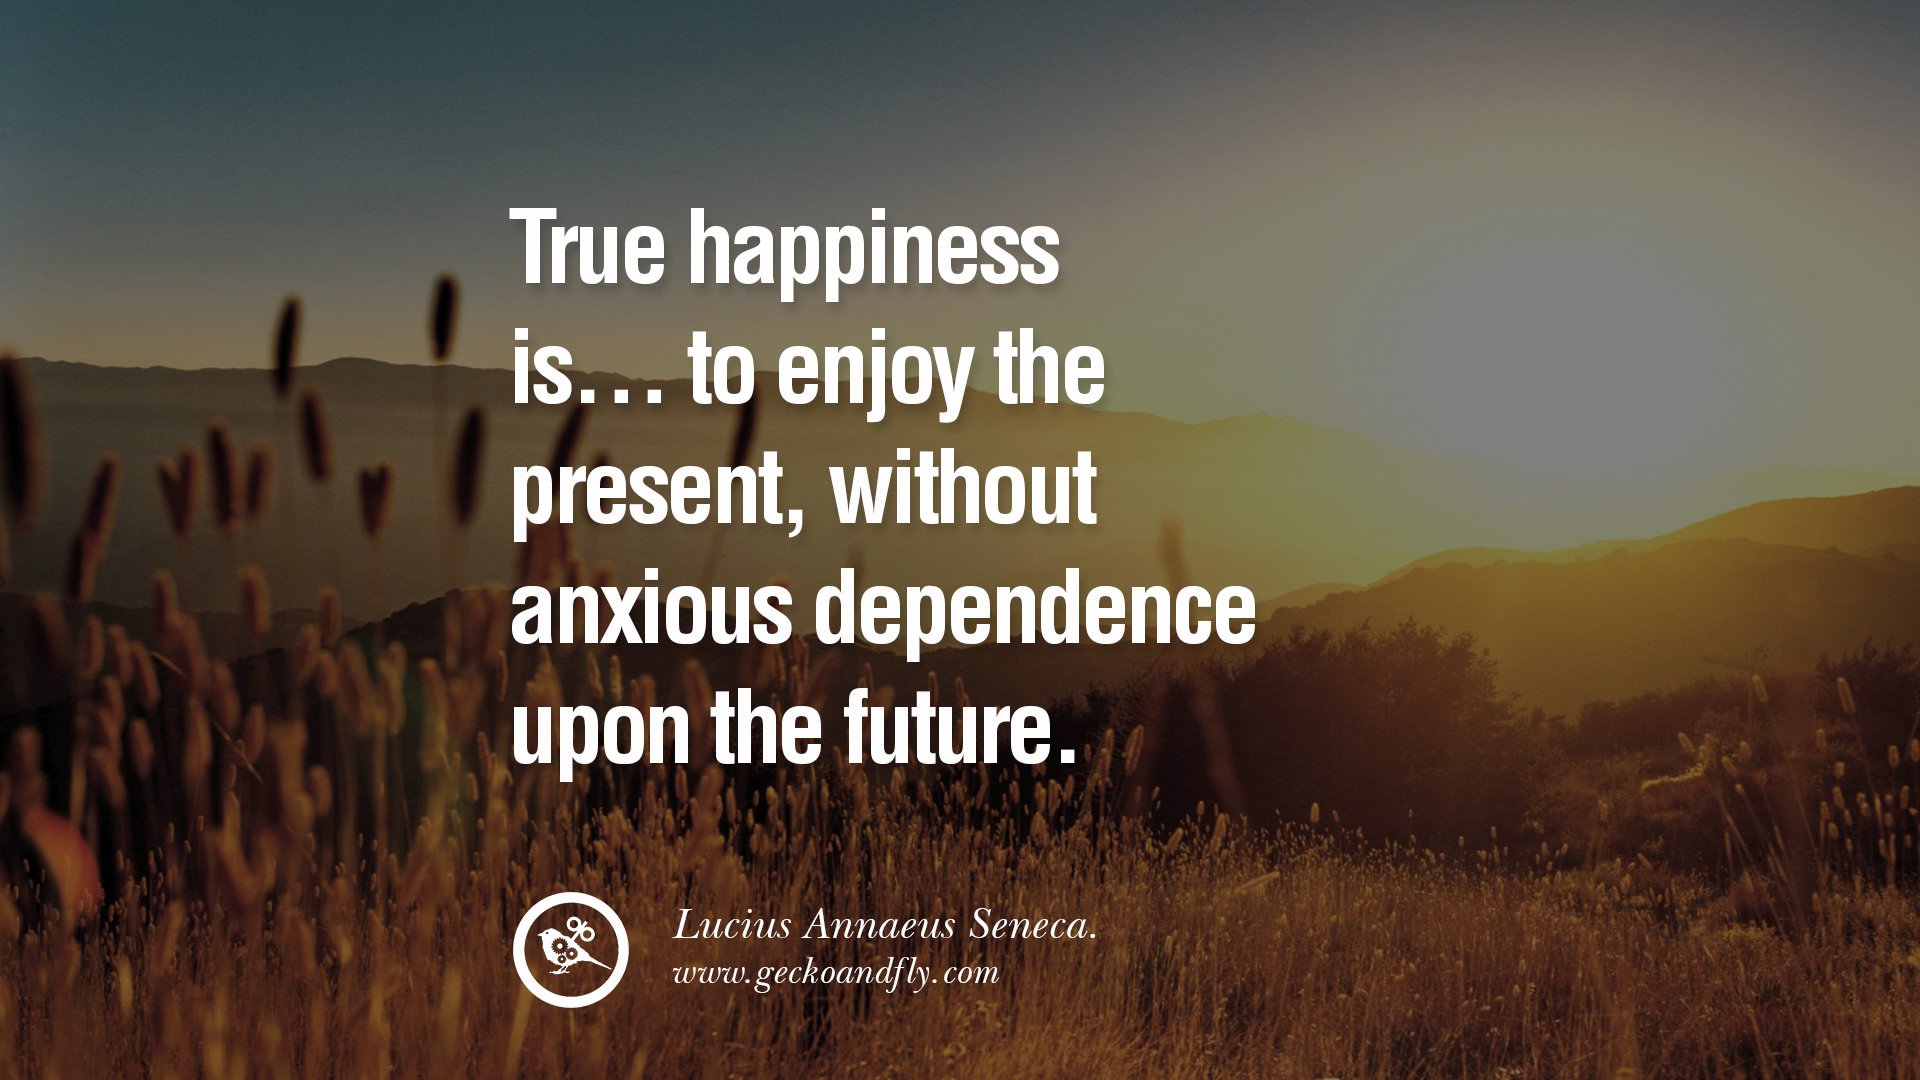 Quotes About True Happiness. QuotesGram